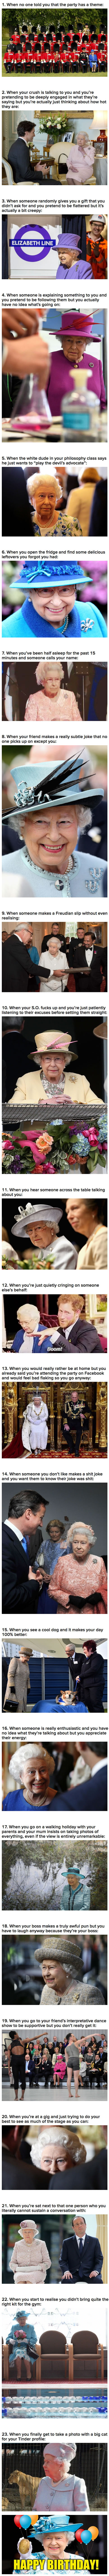 23 Pictures That Prove The Queen Is The Most Relatable Monarch. Happy birthday your majesty :)